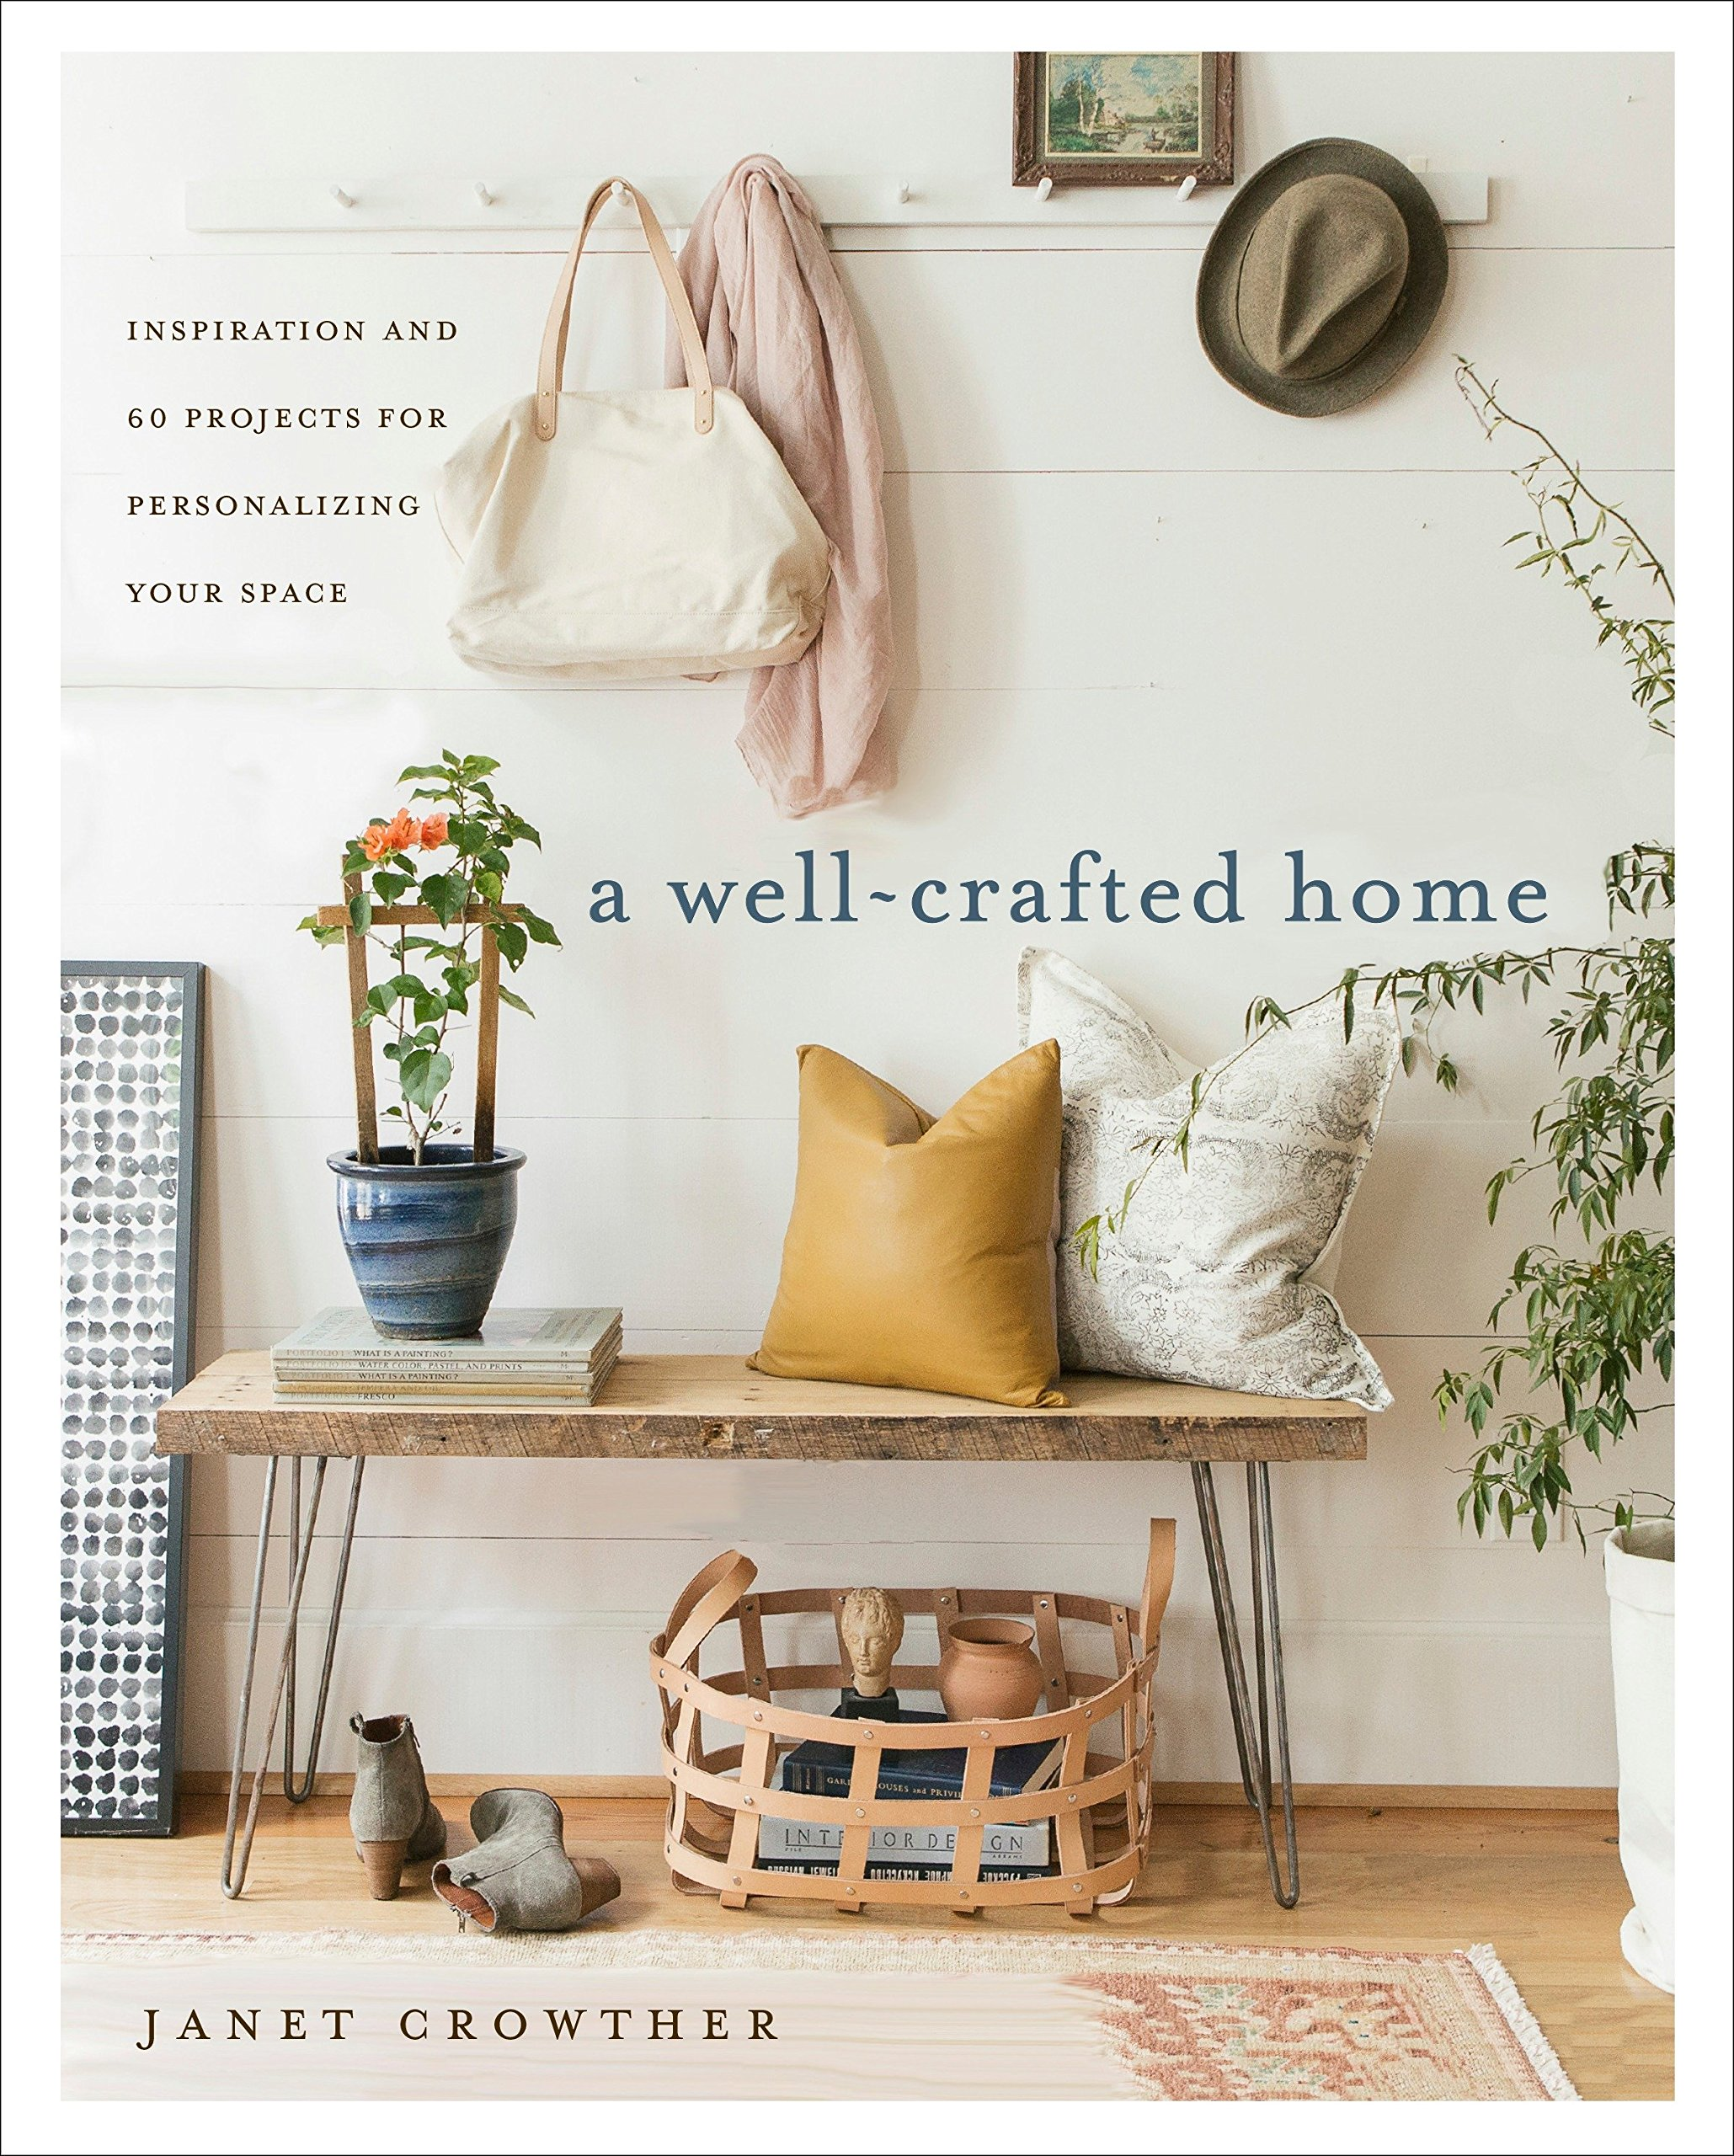 A Well Crafted Home Inspiration And 60 Projects For Personalizing Your Space Crowther Janet 9780553496307 Amazon Com Books